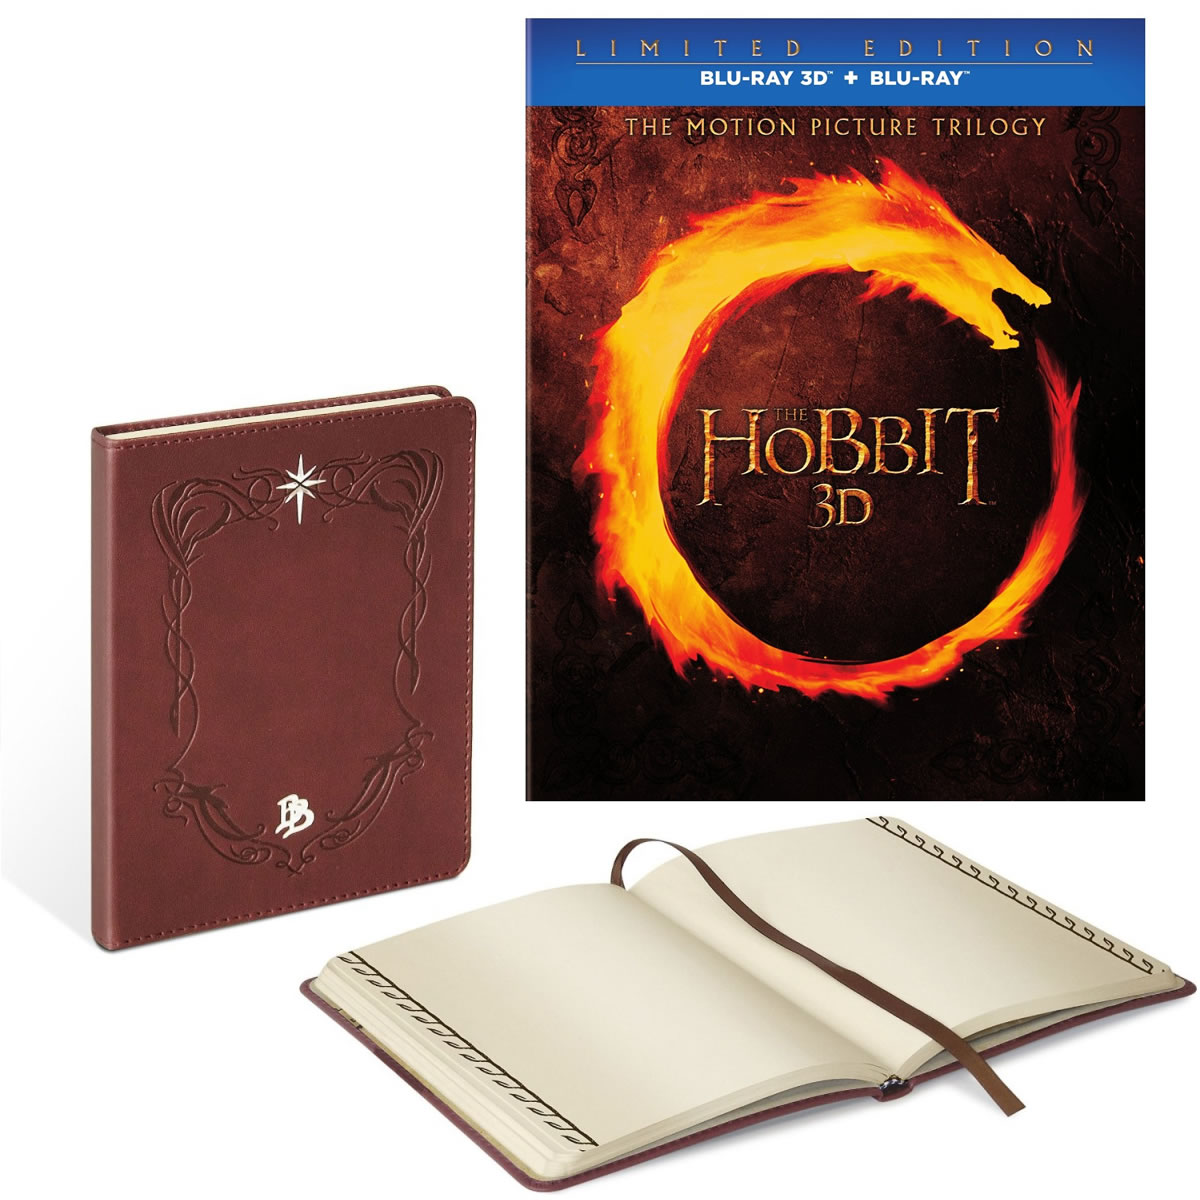 THE HOBBIT 3D: THE MOTION PICTURE TRILOGY + BILBO'S JOURNAL - ������ 3D: � �������� + ���������� Limited Collector's Edition [��������] (6 BLU-RAY 3D + 6 BLU-RAY)